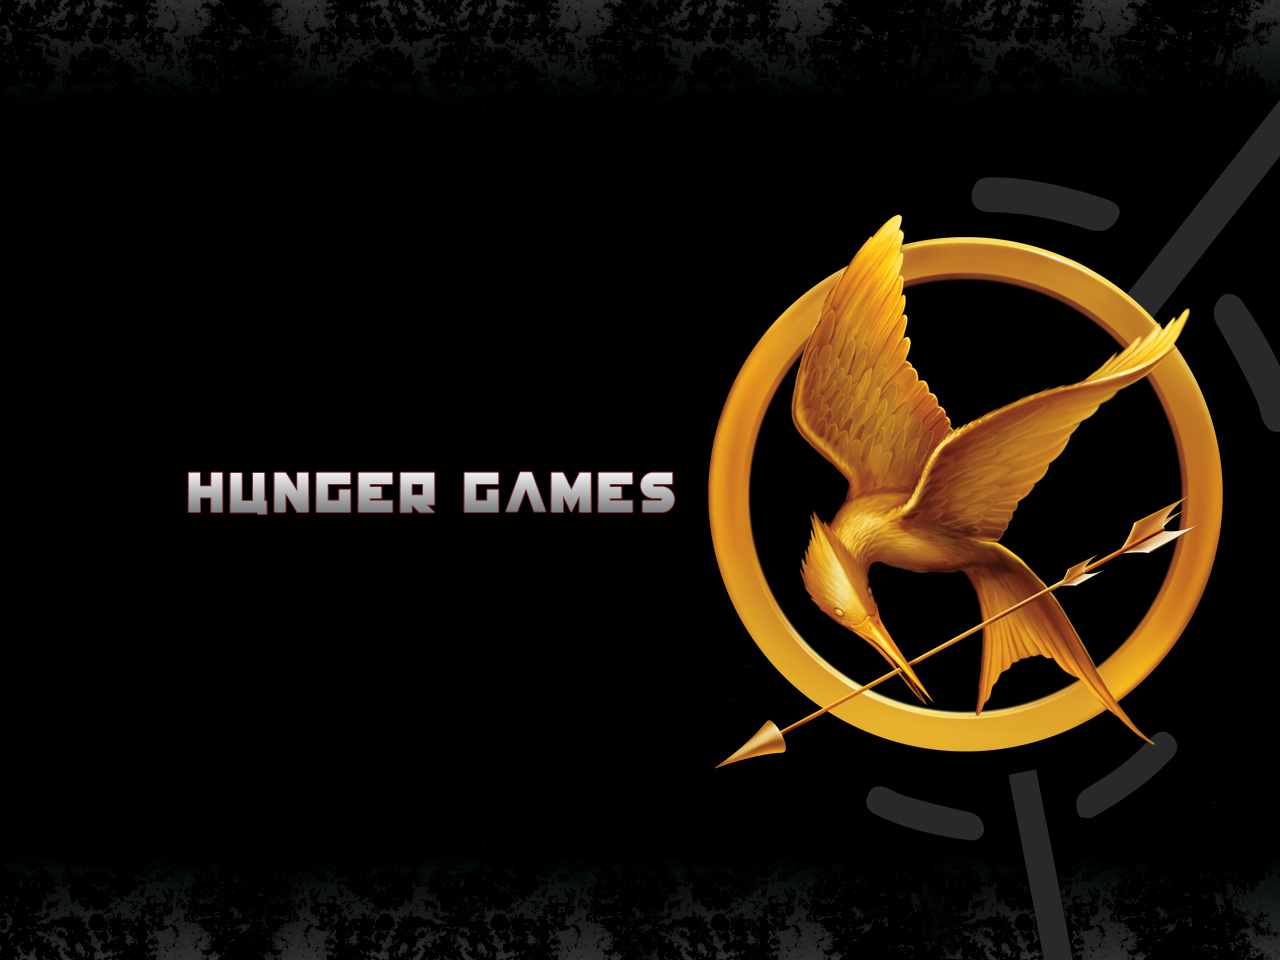 025 The Hunger Games Book Review Essay Imposing Full